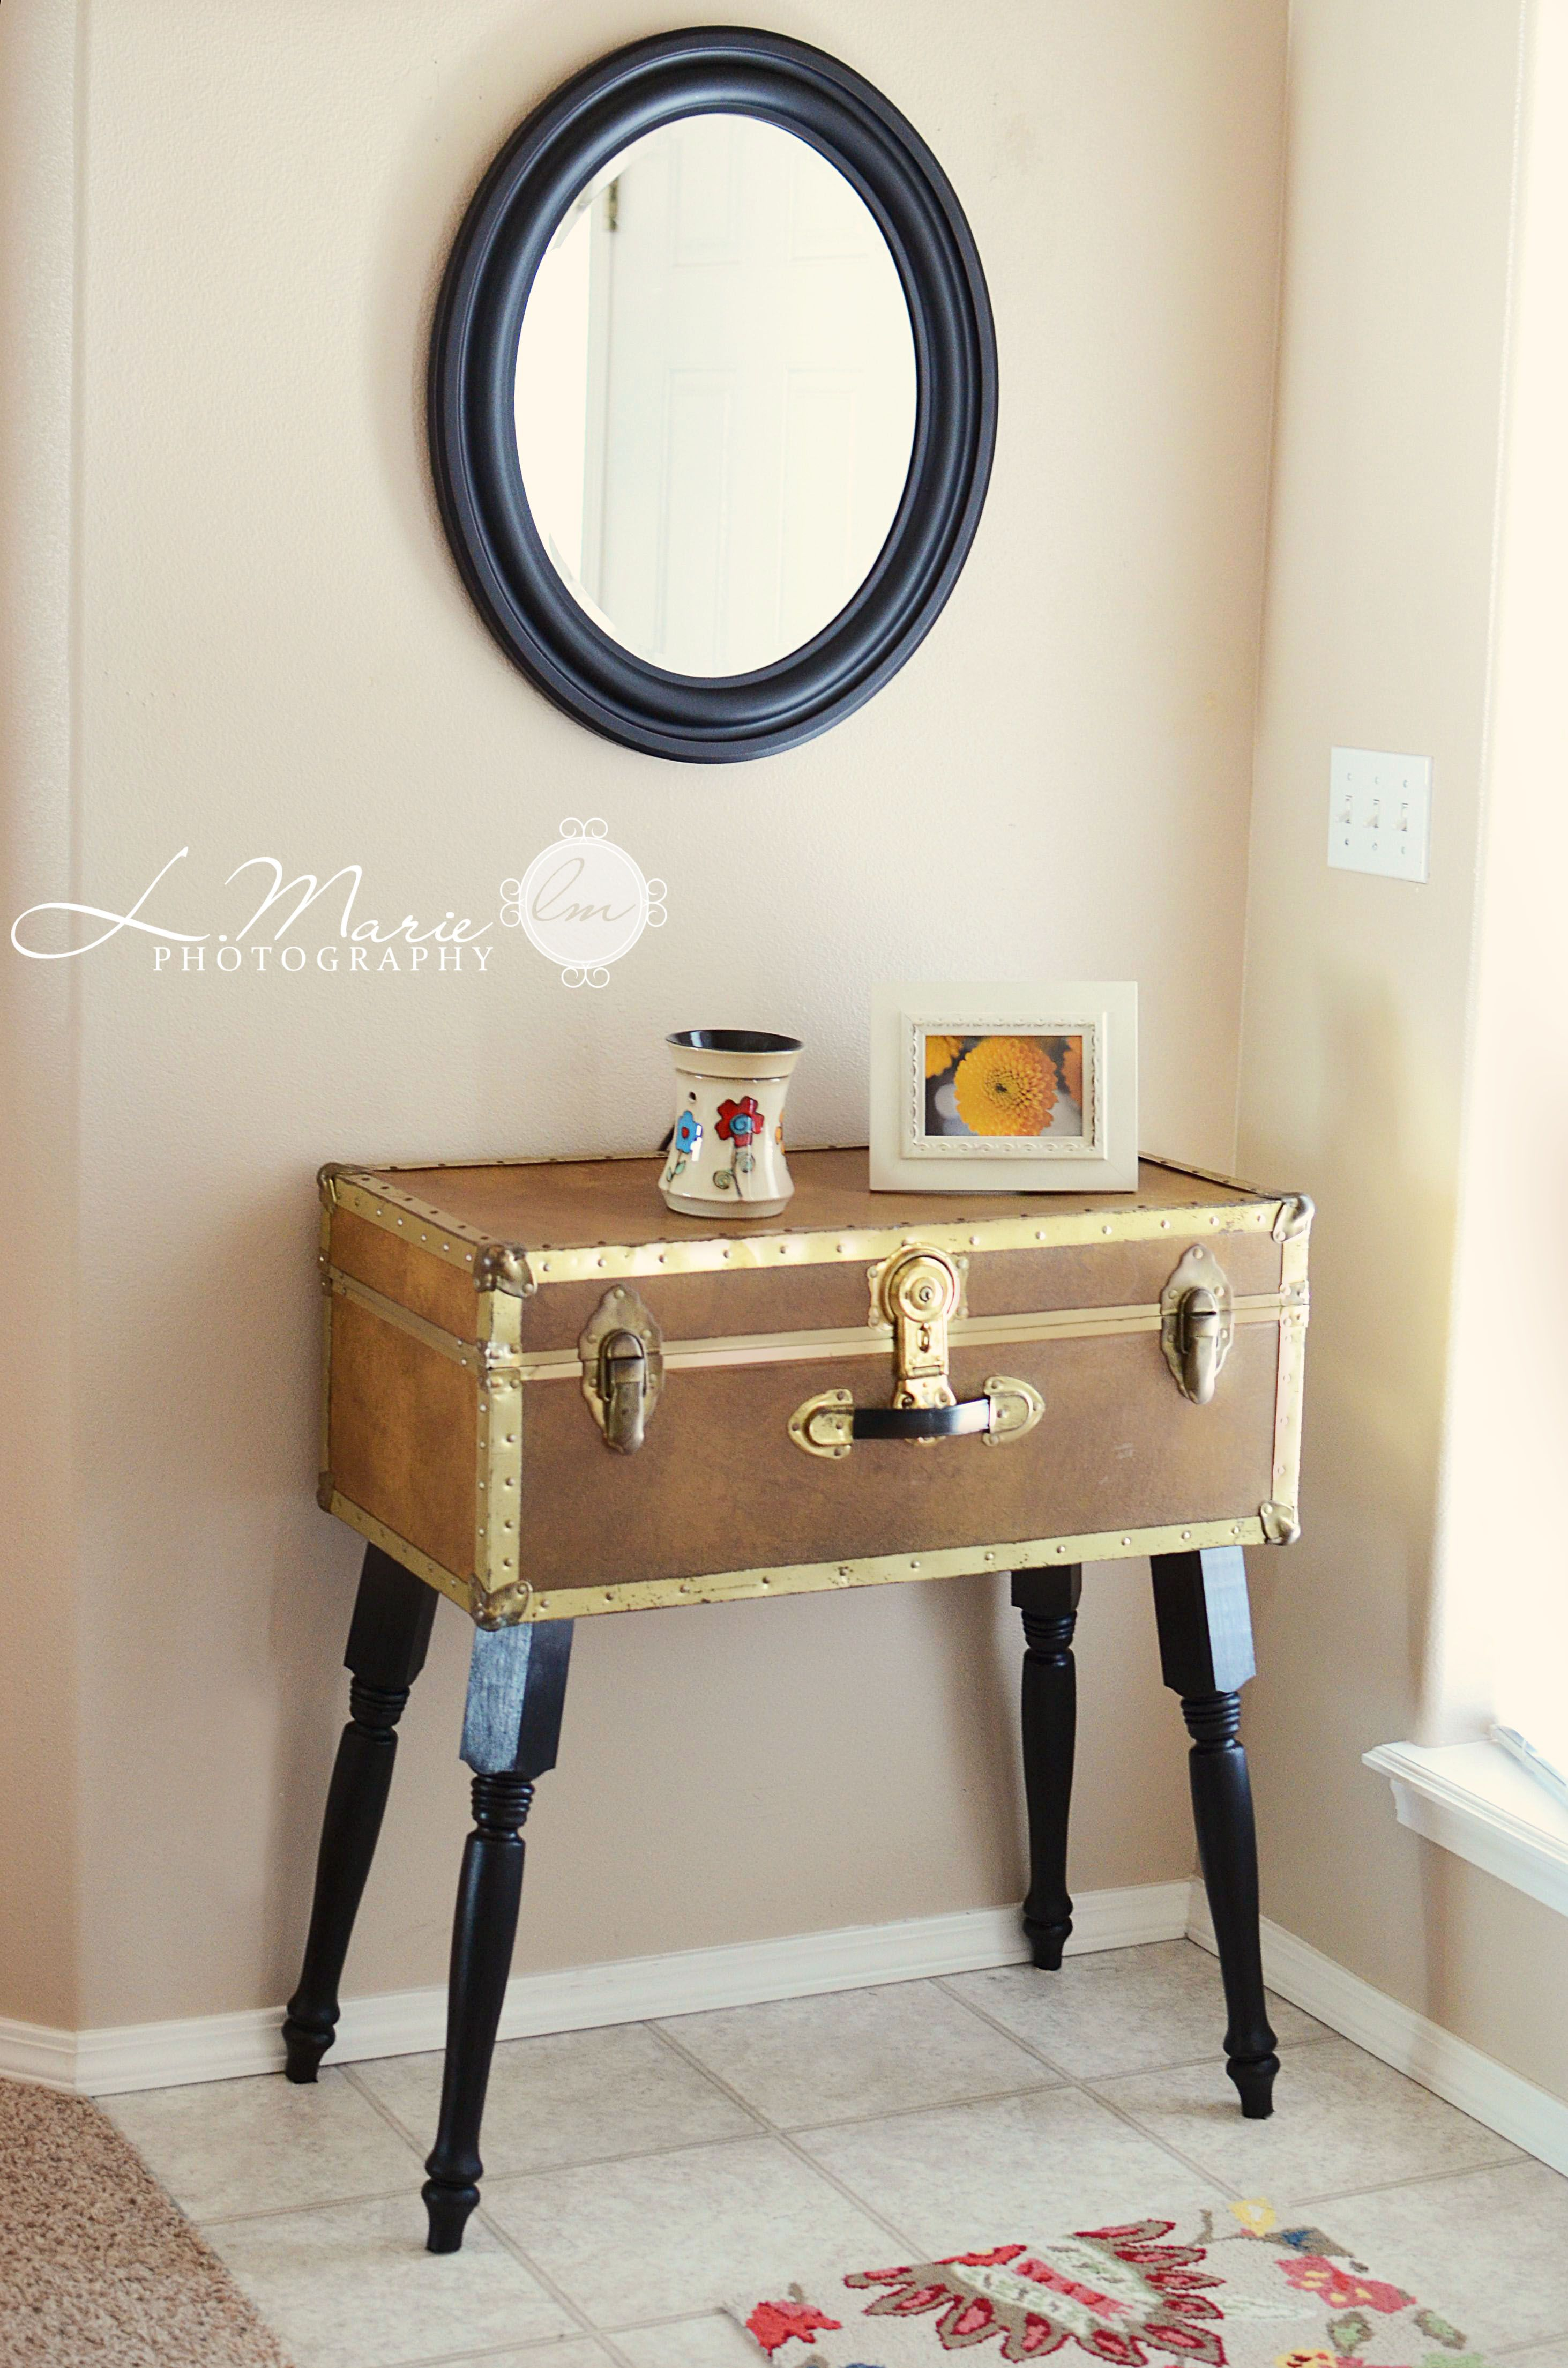 Diy suitcase table - Diy Table Made With An Old Trunk Very Cool